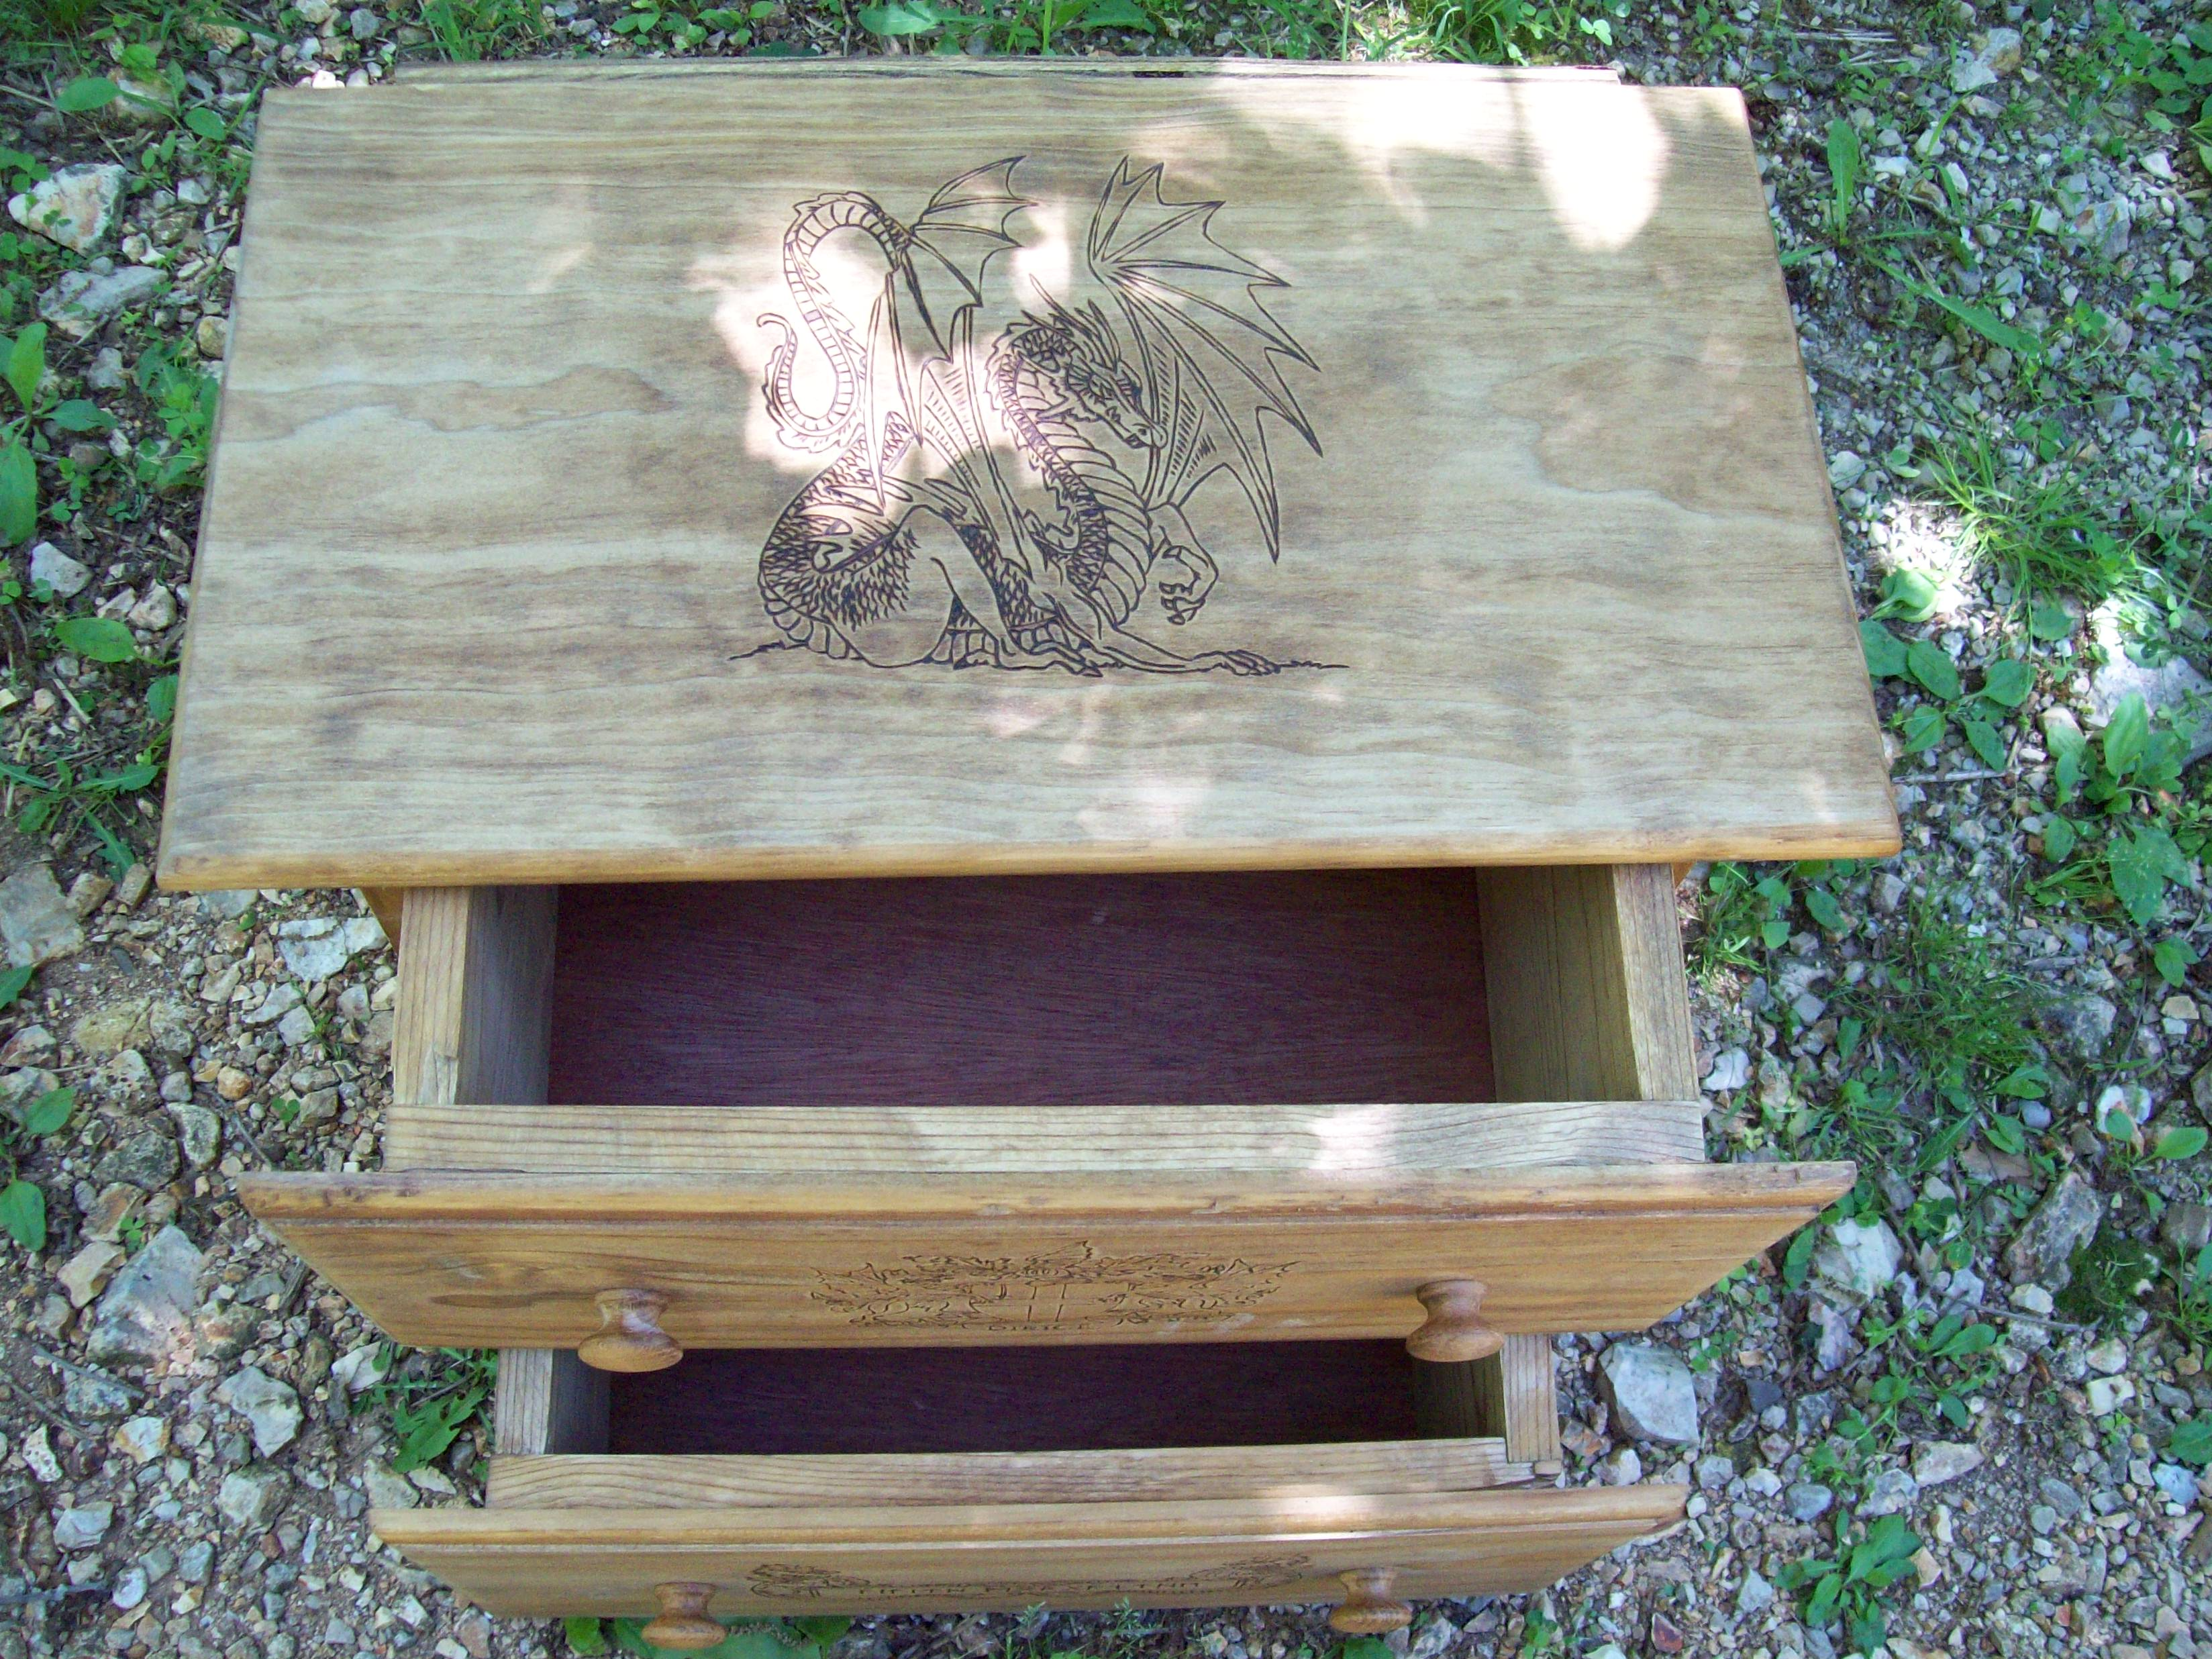 Two full sized drawers on the dragon fable stand.